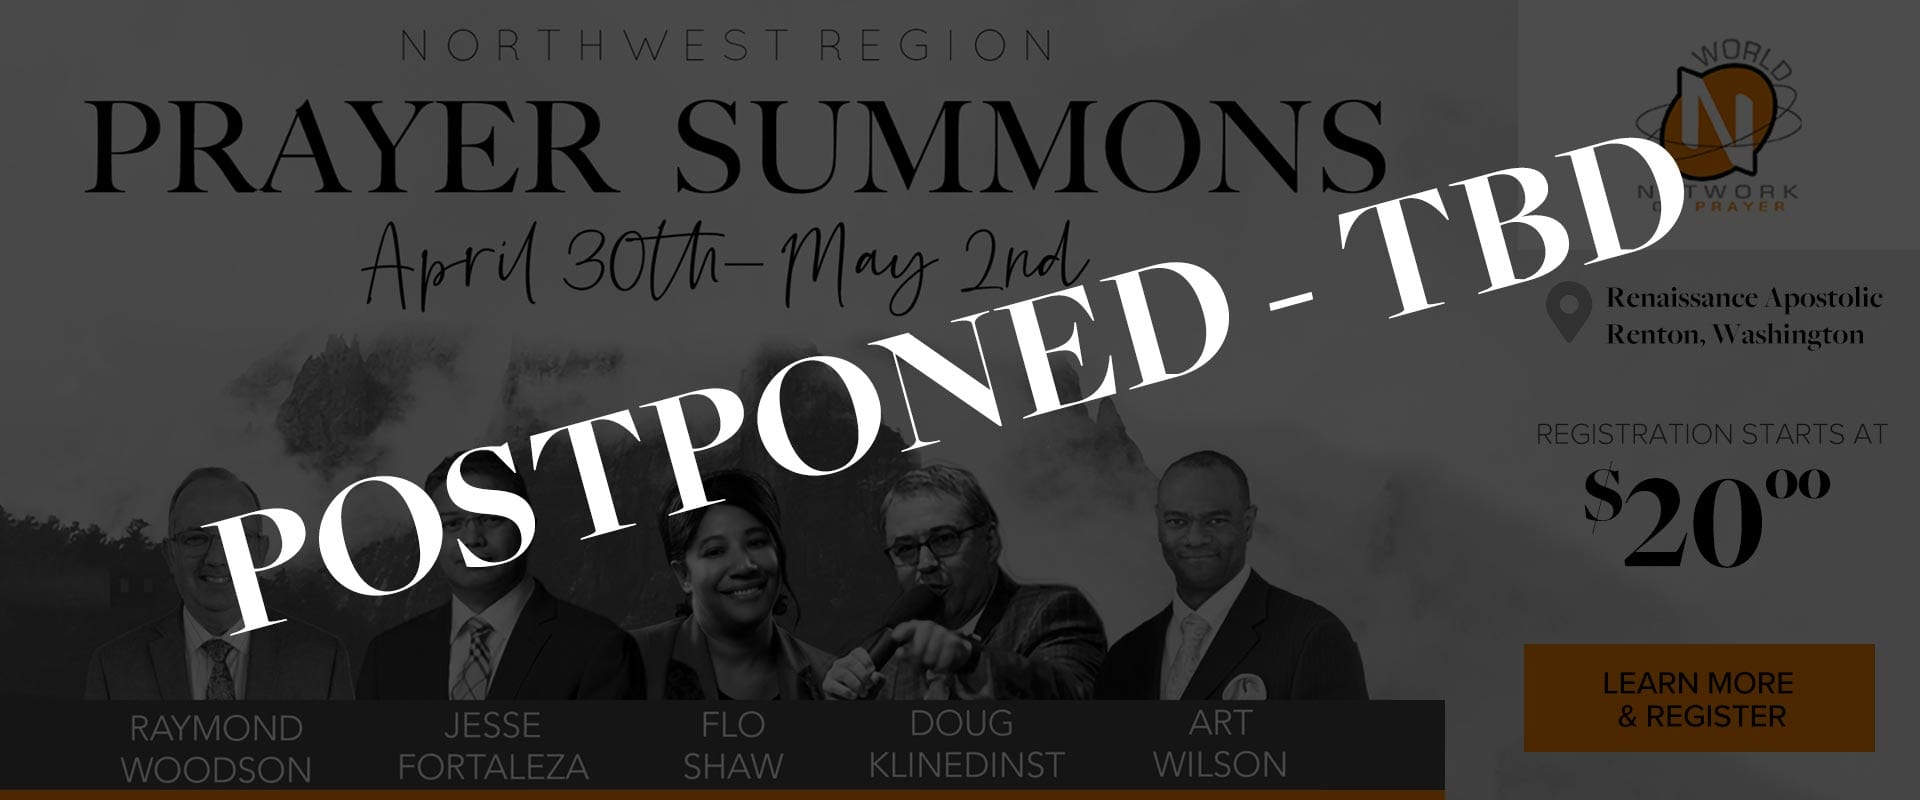 prayer-summons-2020postponed